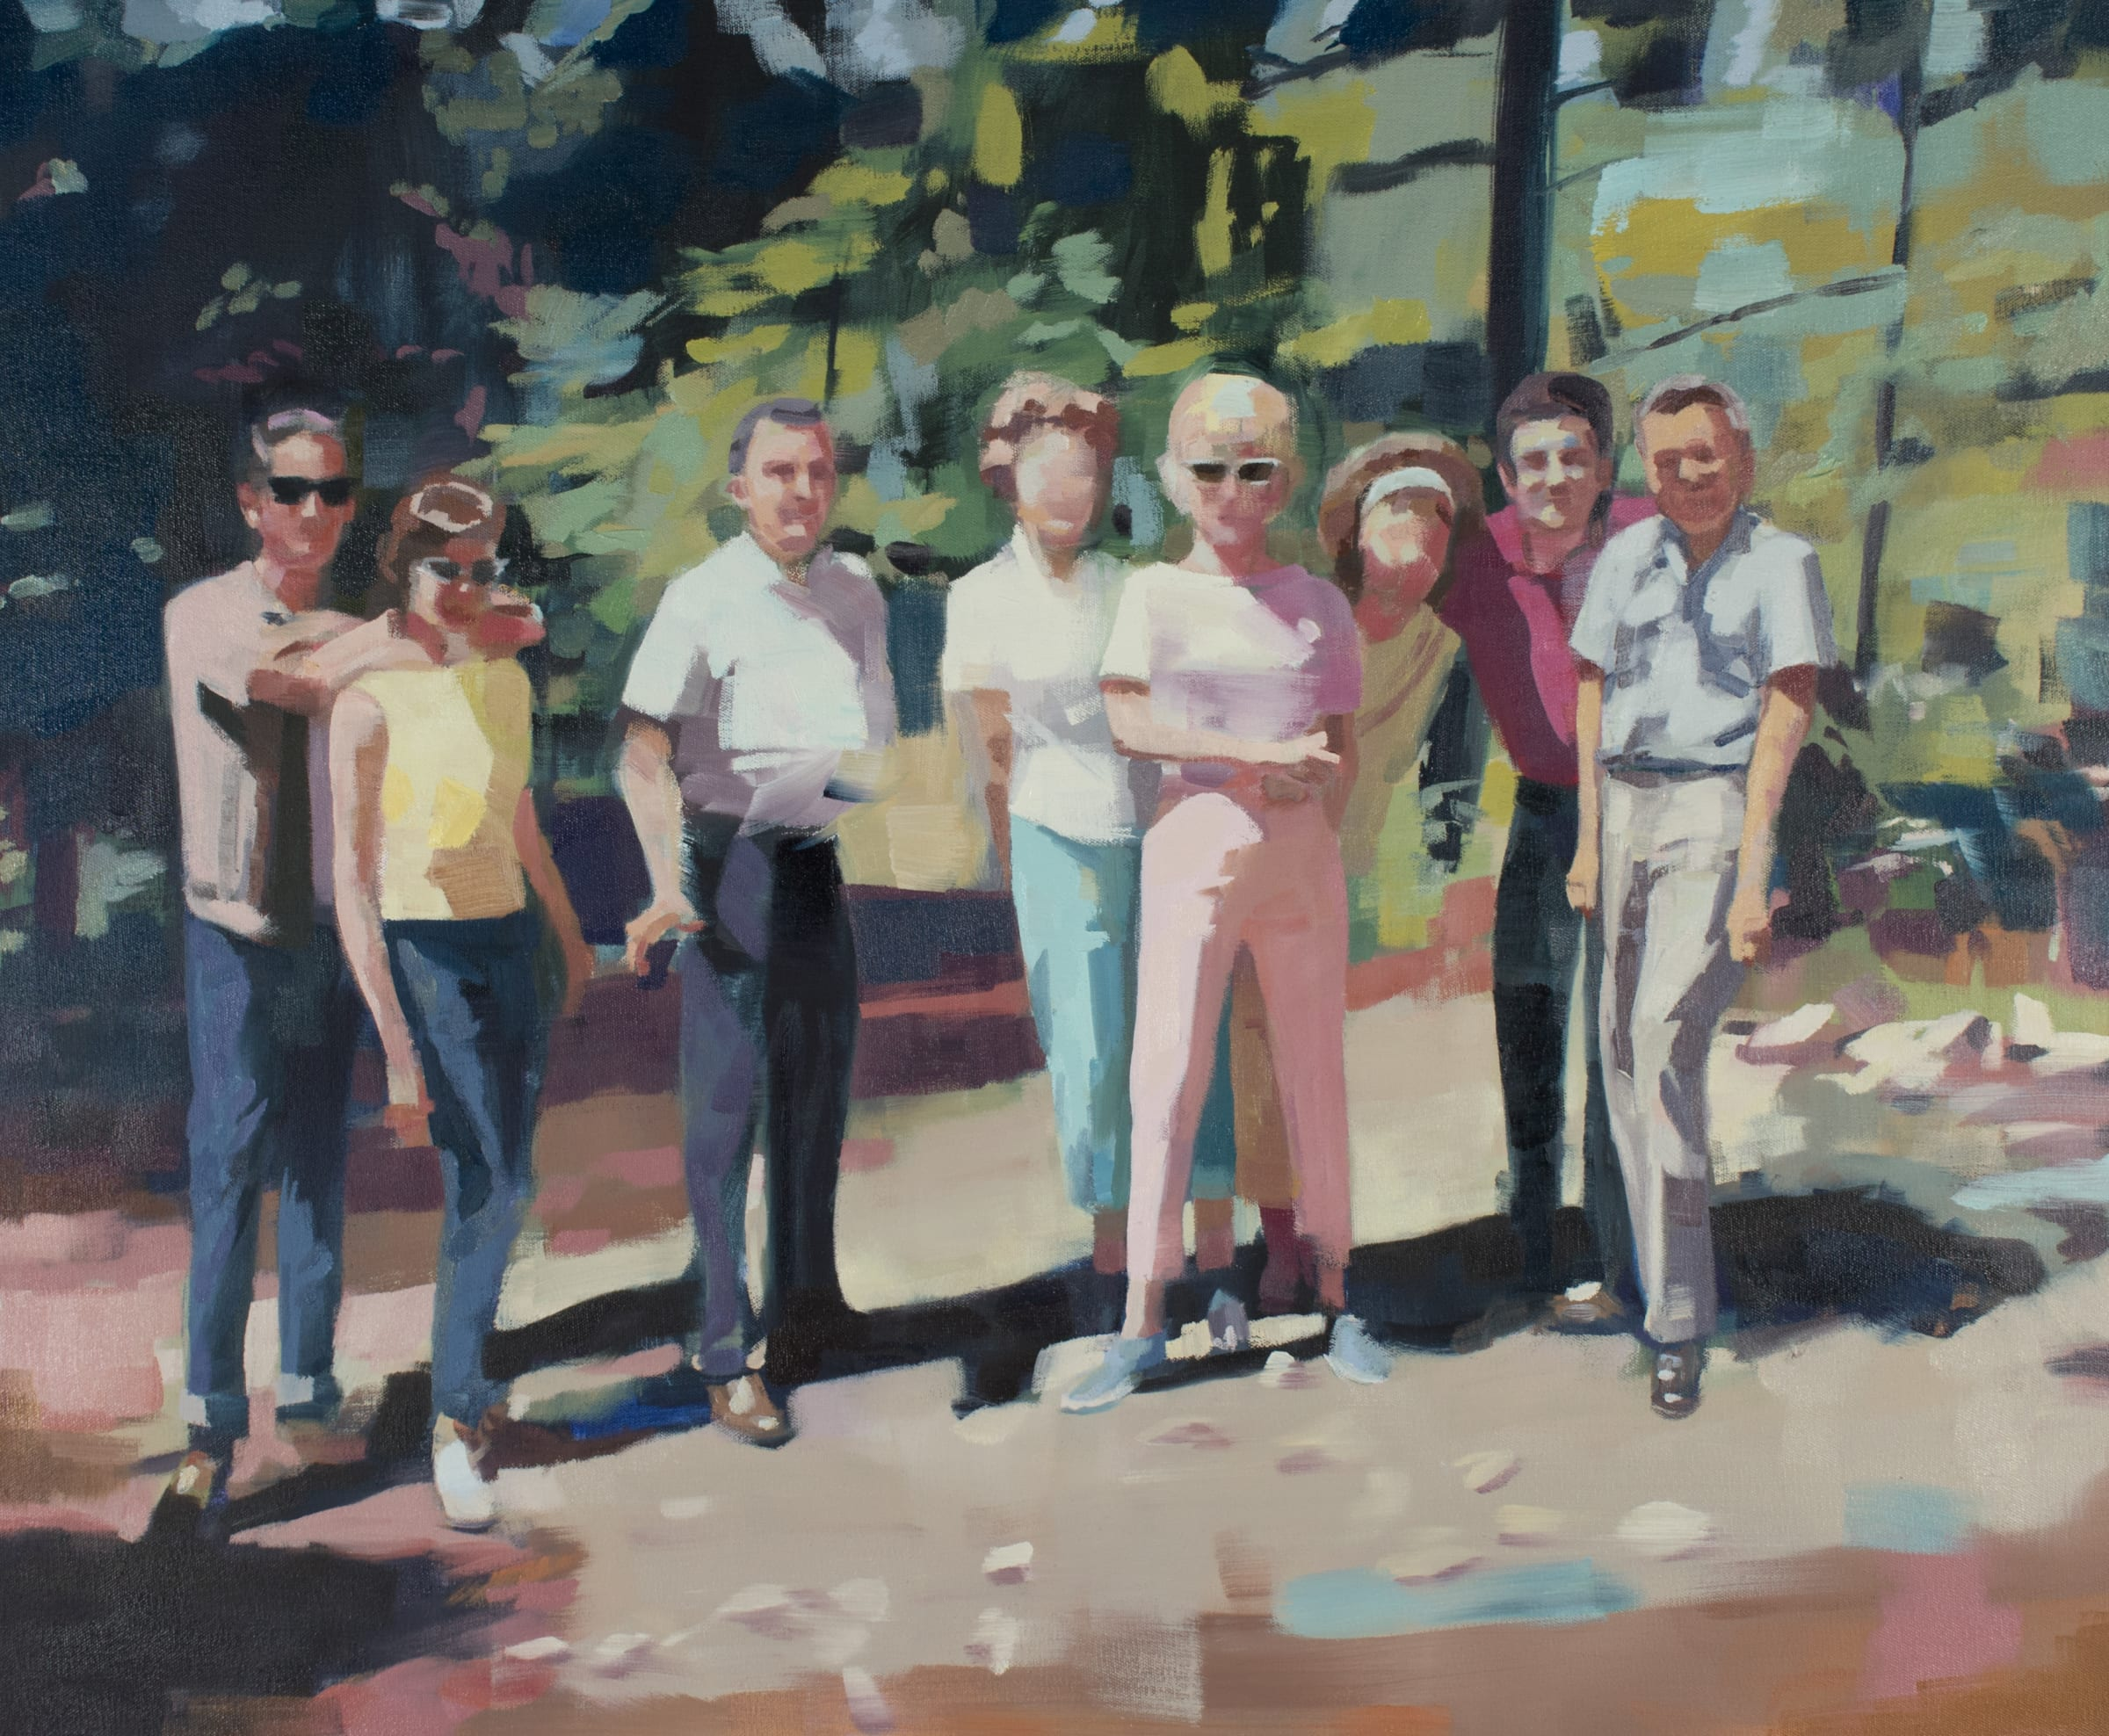 "<span class=""link fancybox-details-link""><a href=""/artists/89-kirsten-tradowsky/works/1234-kirsten-tradowsky-reunion/"">View Detail Page</a></span><div class=""artist""><strong>Kirsten Tradowsky</strong></div> <div class=""title""><em>Reunion</em></div> <div class=""medium"">Oil on canvas</div> <div class=""dimensions"">28 x 34 inches</div>"